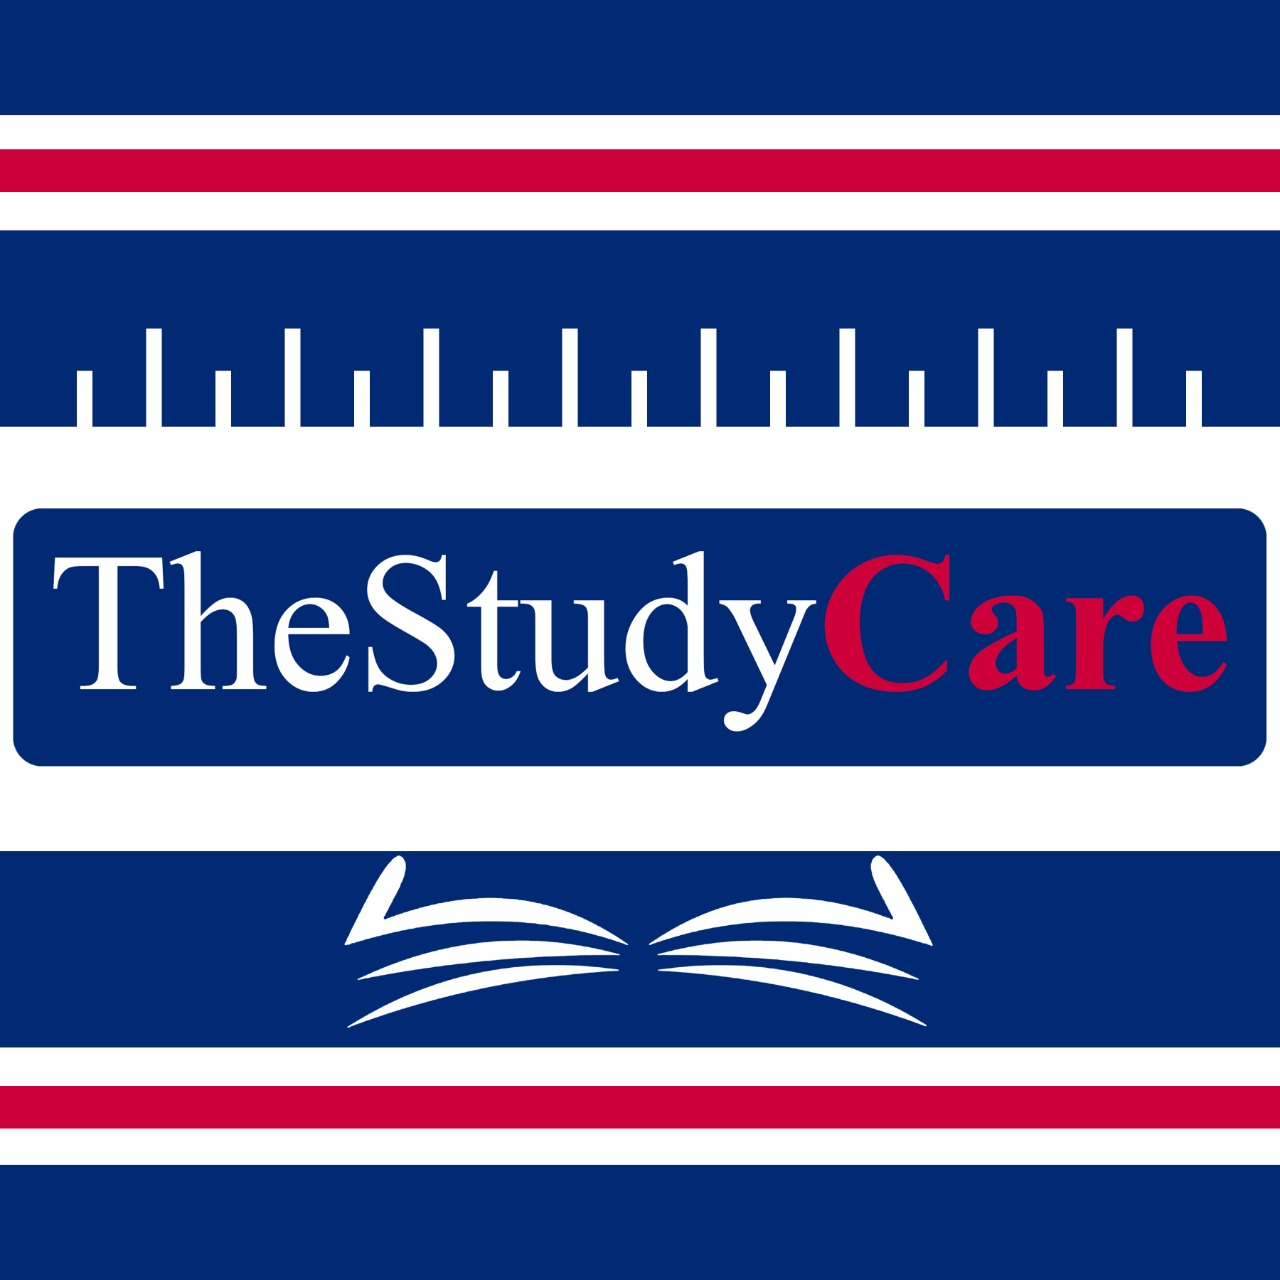 Introducing our partner Company - TheStudyCare